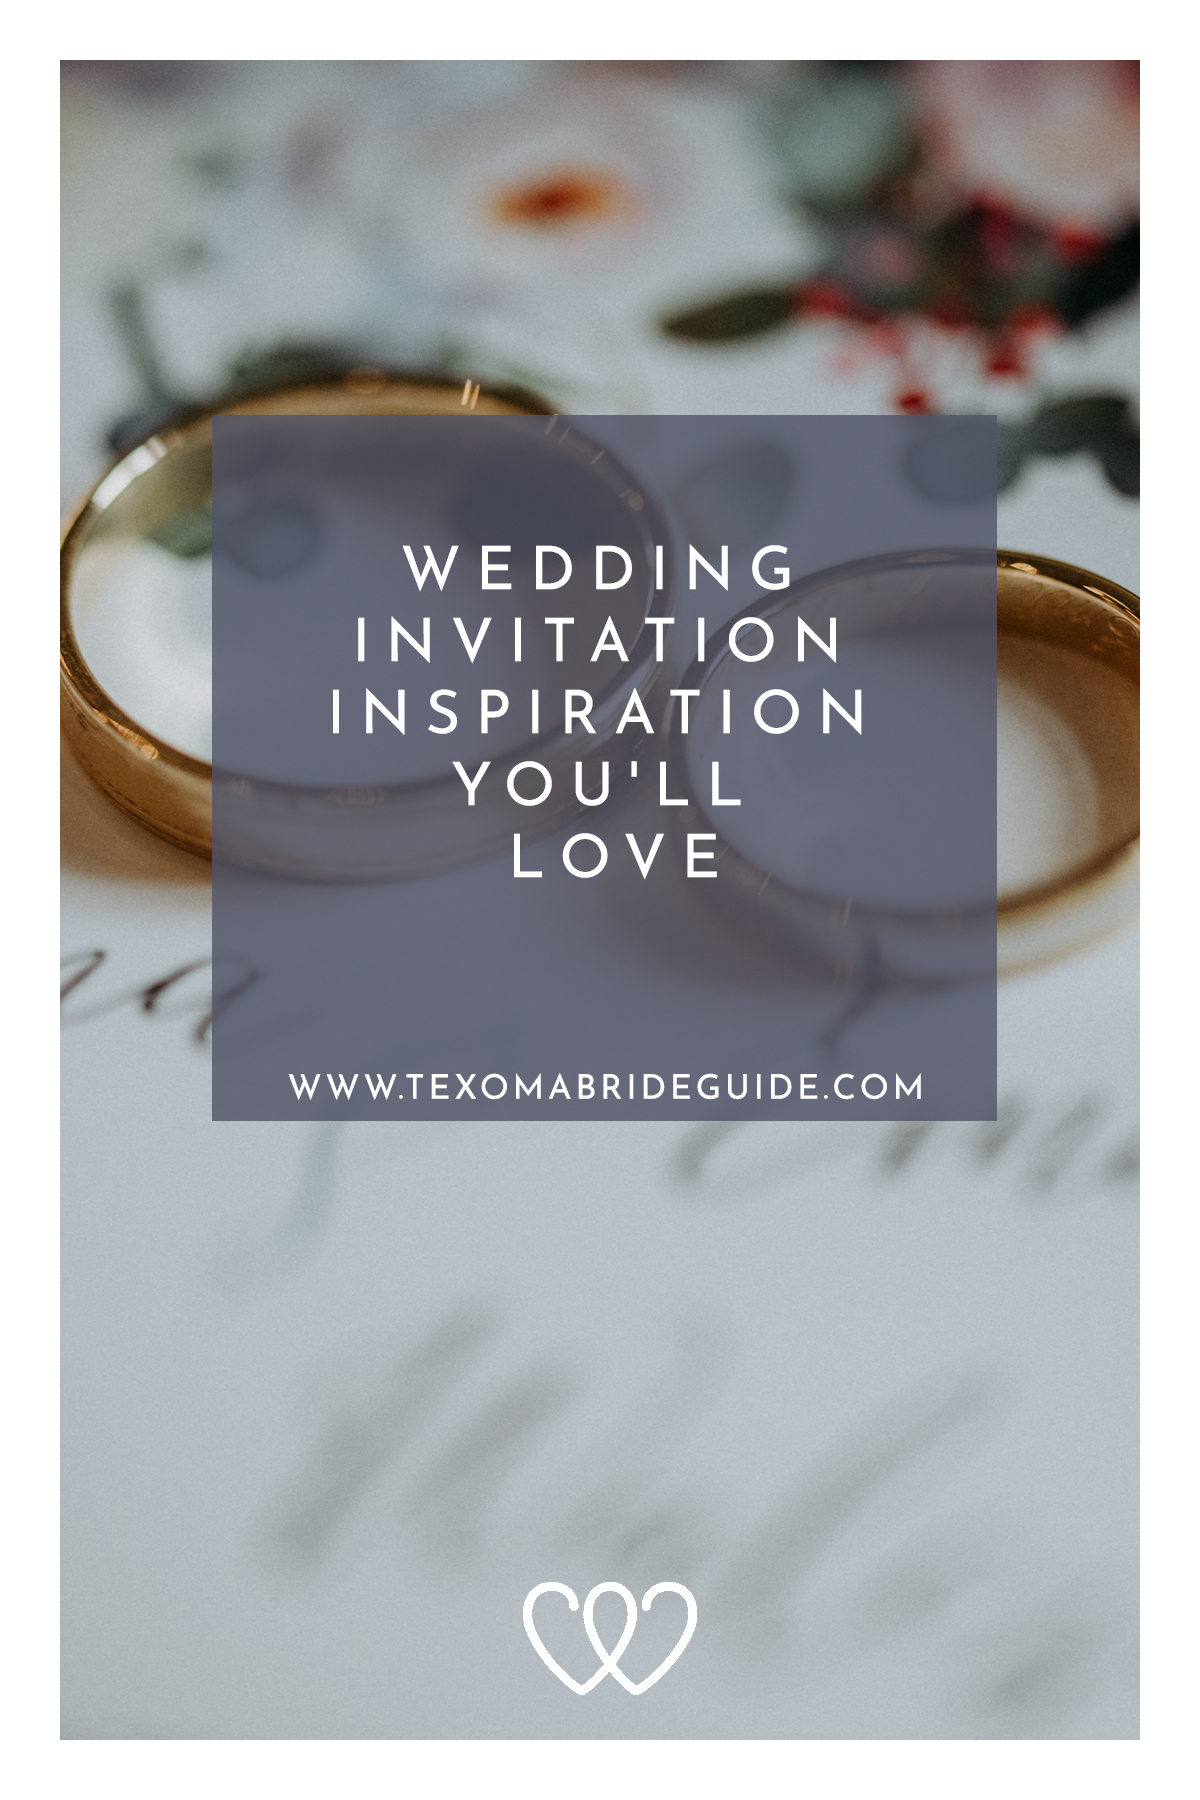 Wedding Invitation Inspiration You'll Love | Texoma Bride Guide Blog